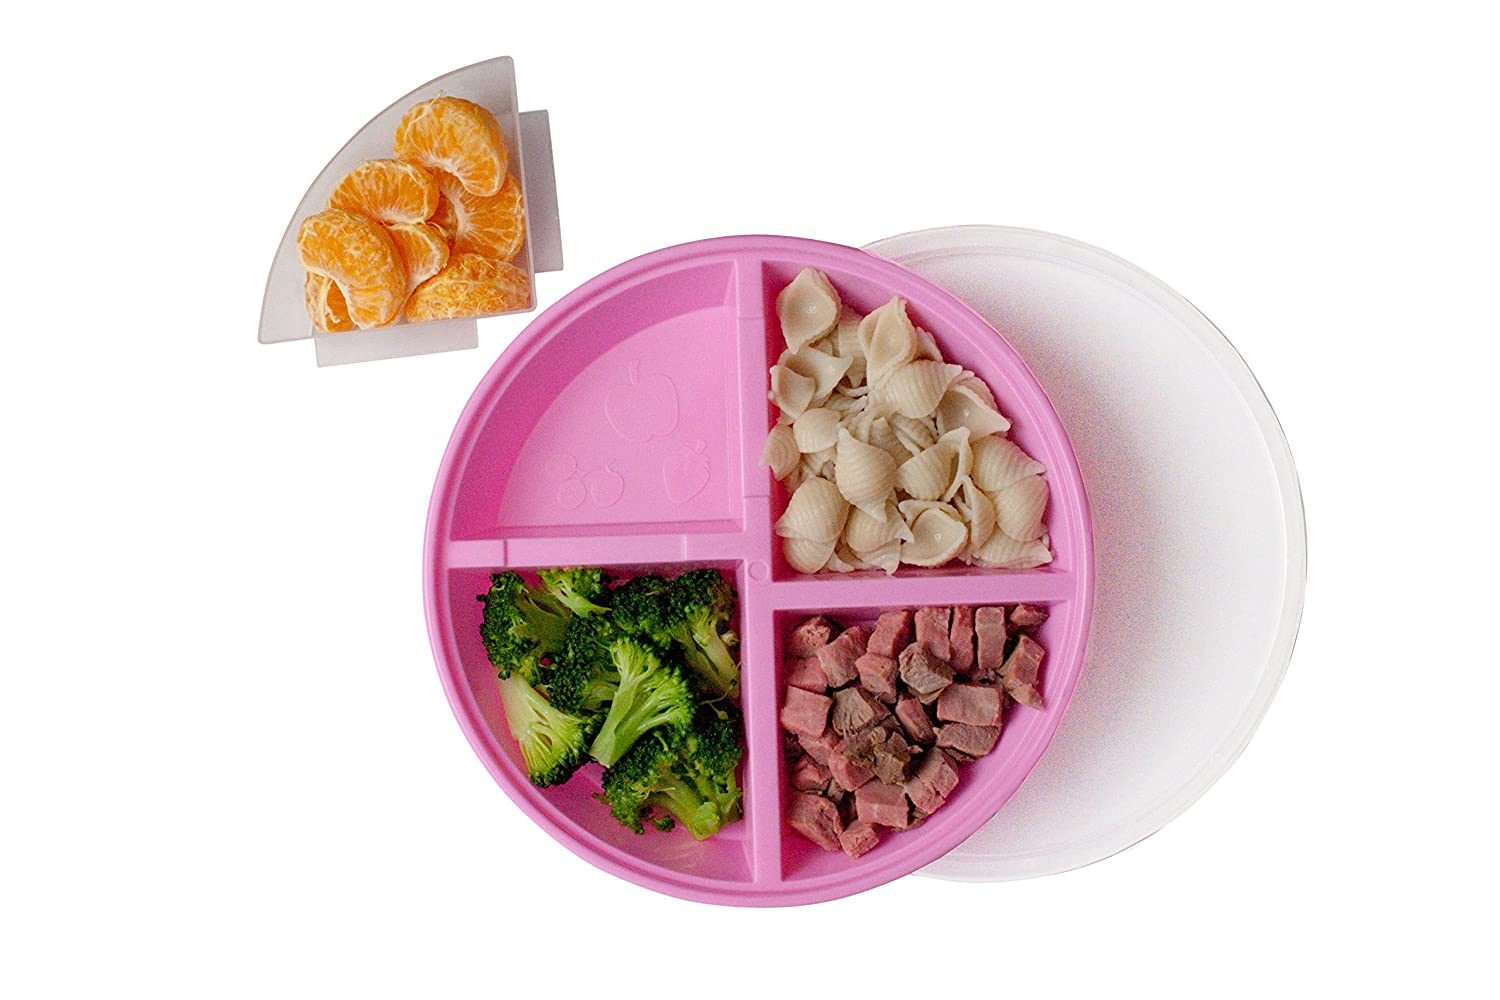 Nalaire Toddler Divided Plate with Lid - 2 Pack … (Pink/Yellow)